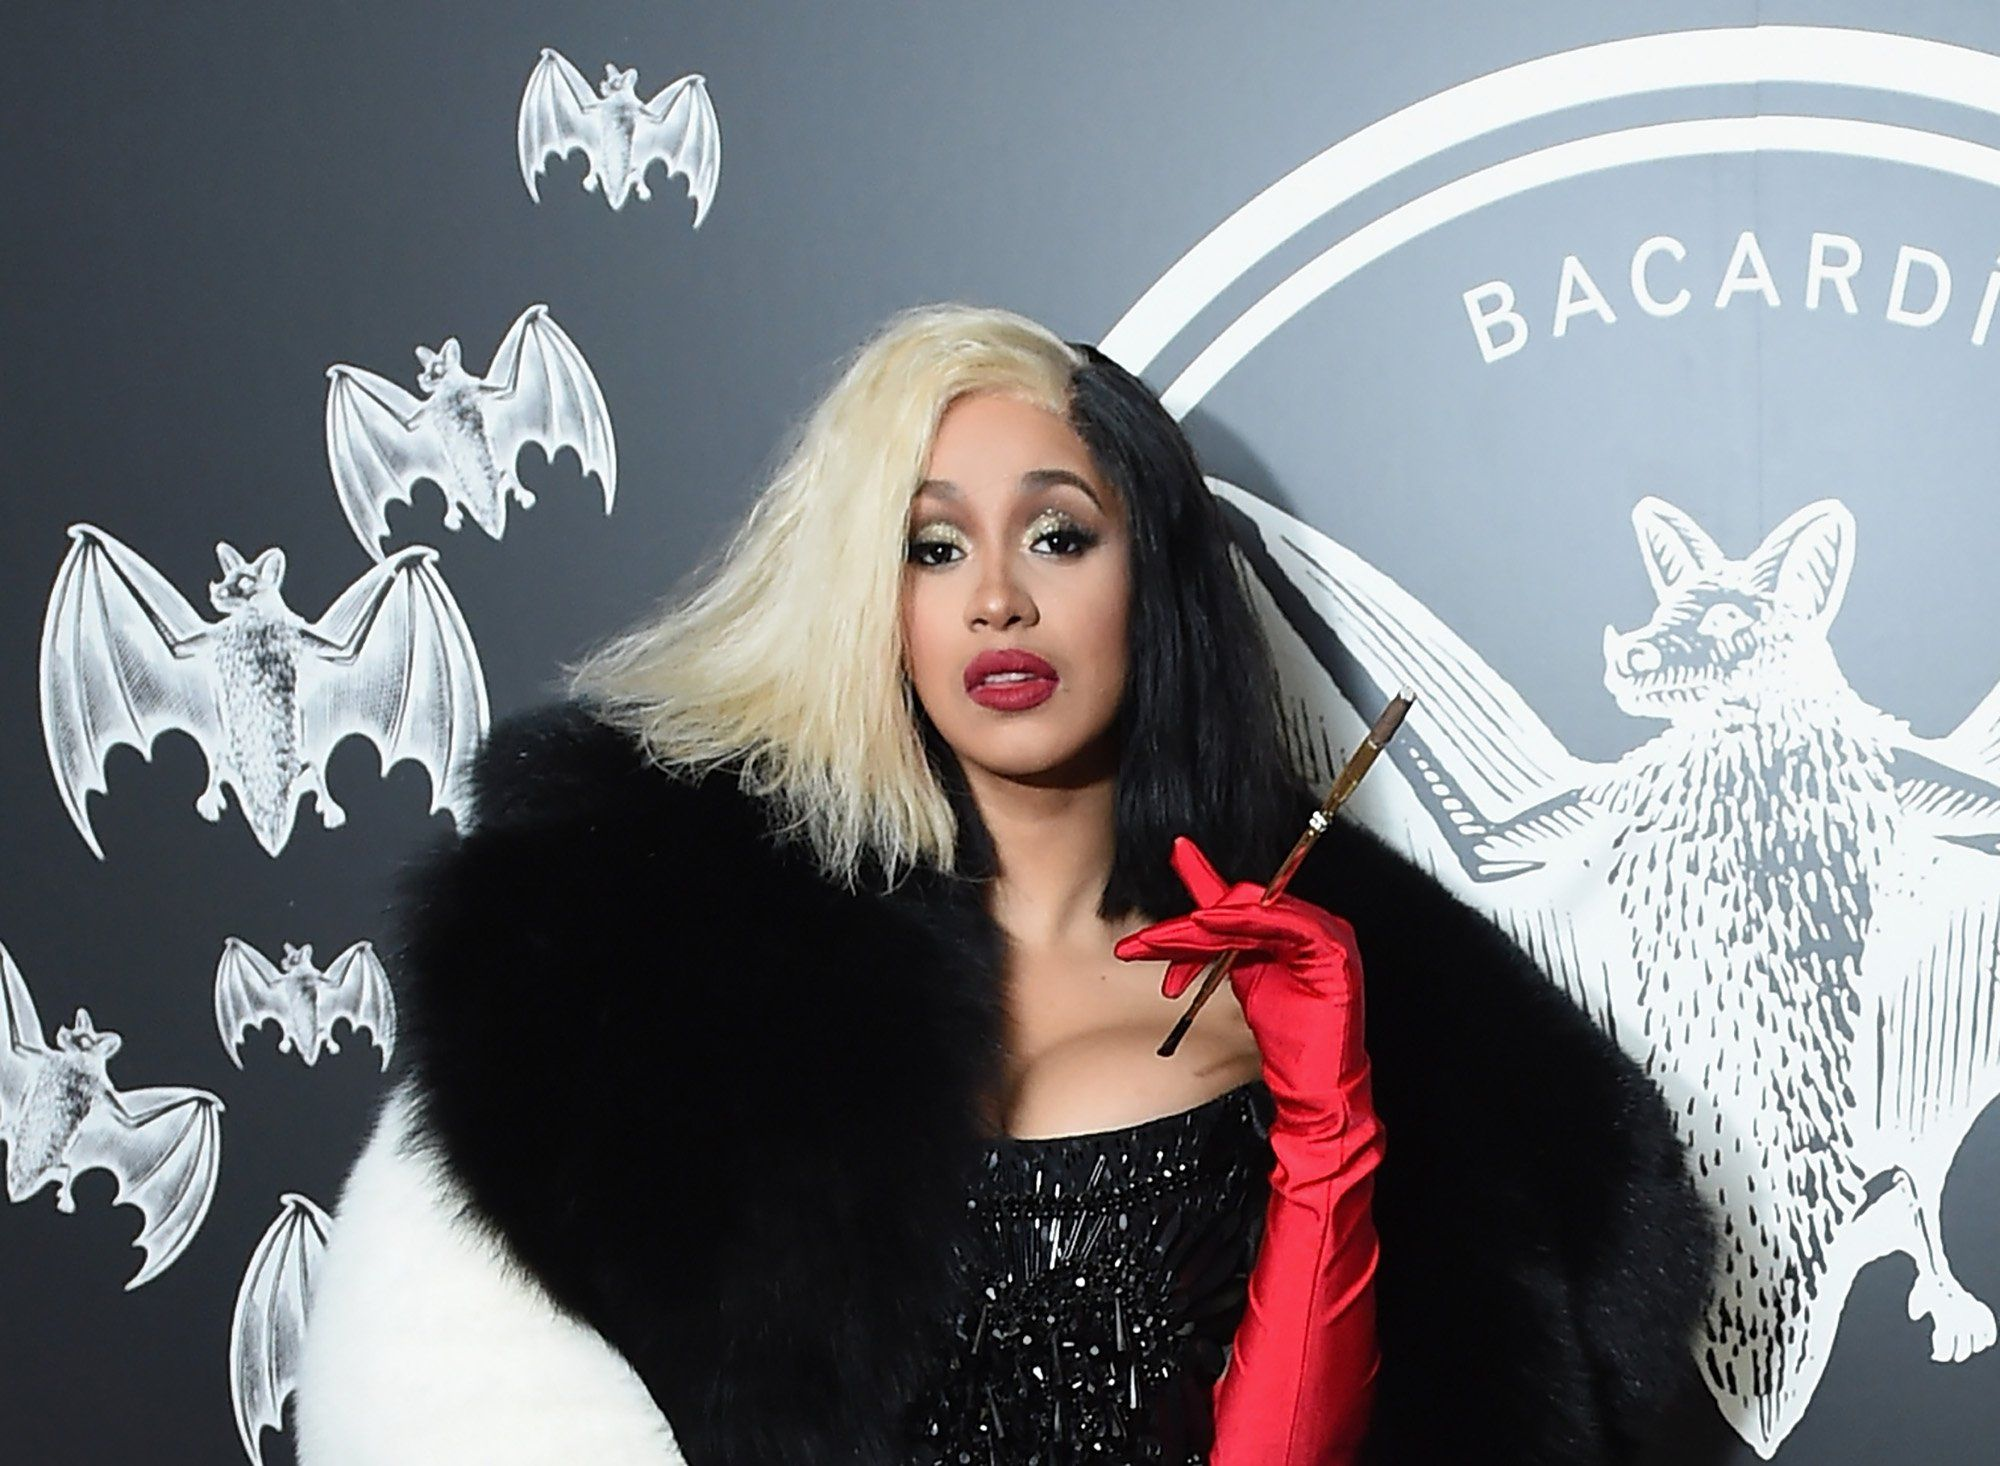 Cardi B Claps Back At Hater Who Asks Her Why She Isn't Wearing Her